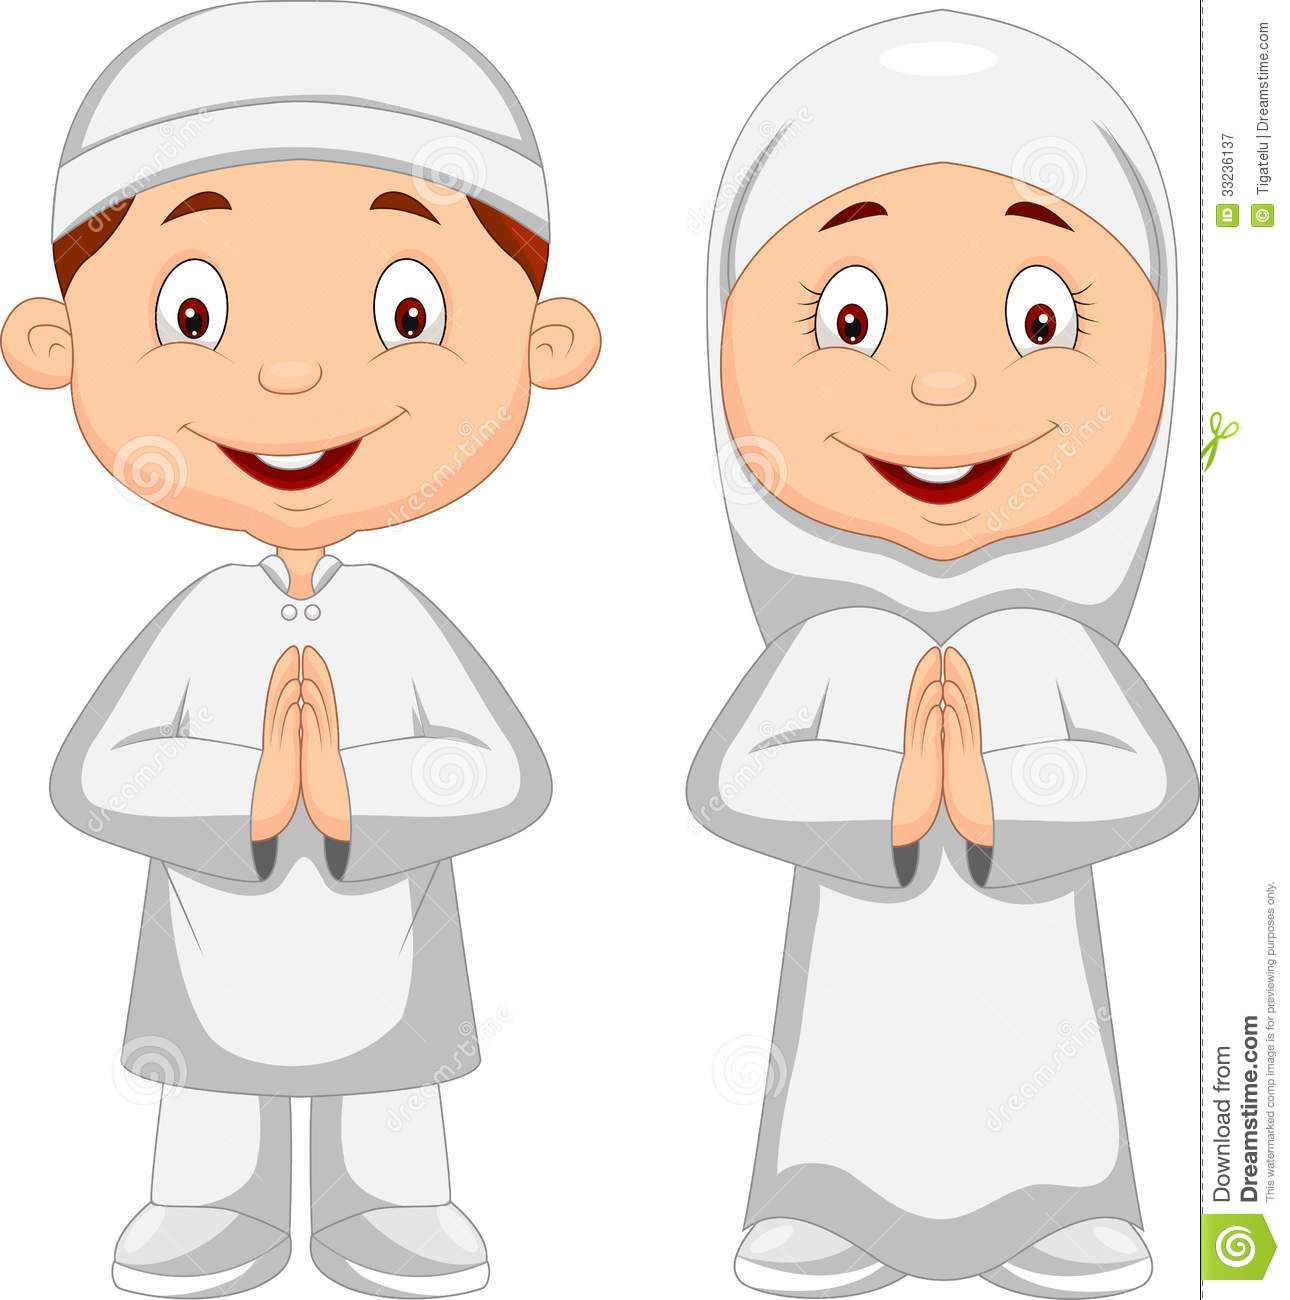 Muslim Kid Cartoon Royalty Free Stock Photography Image 33236137